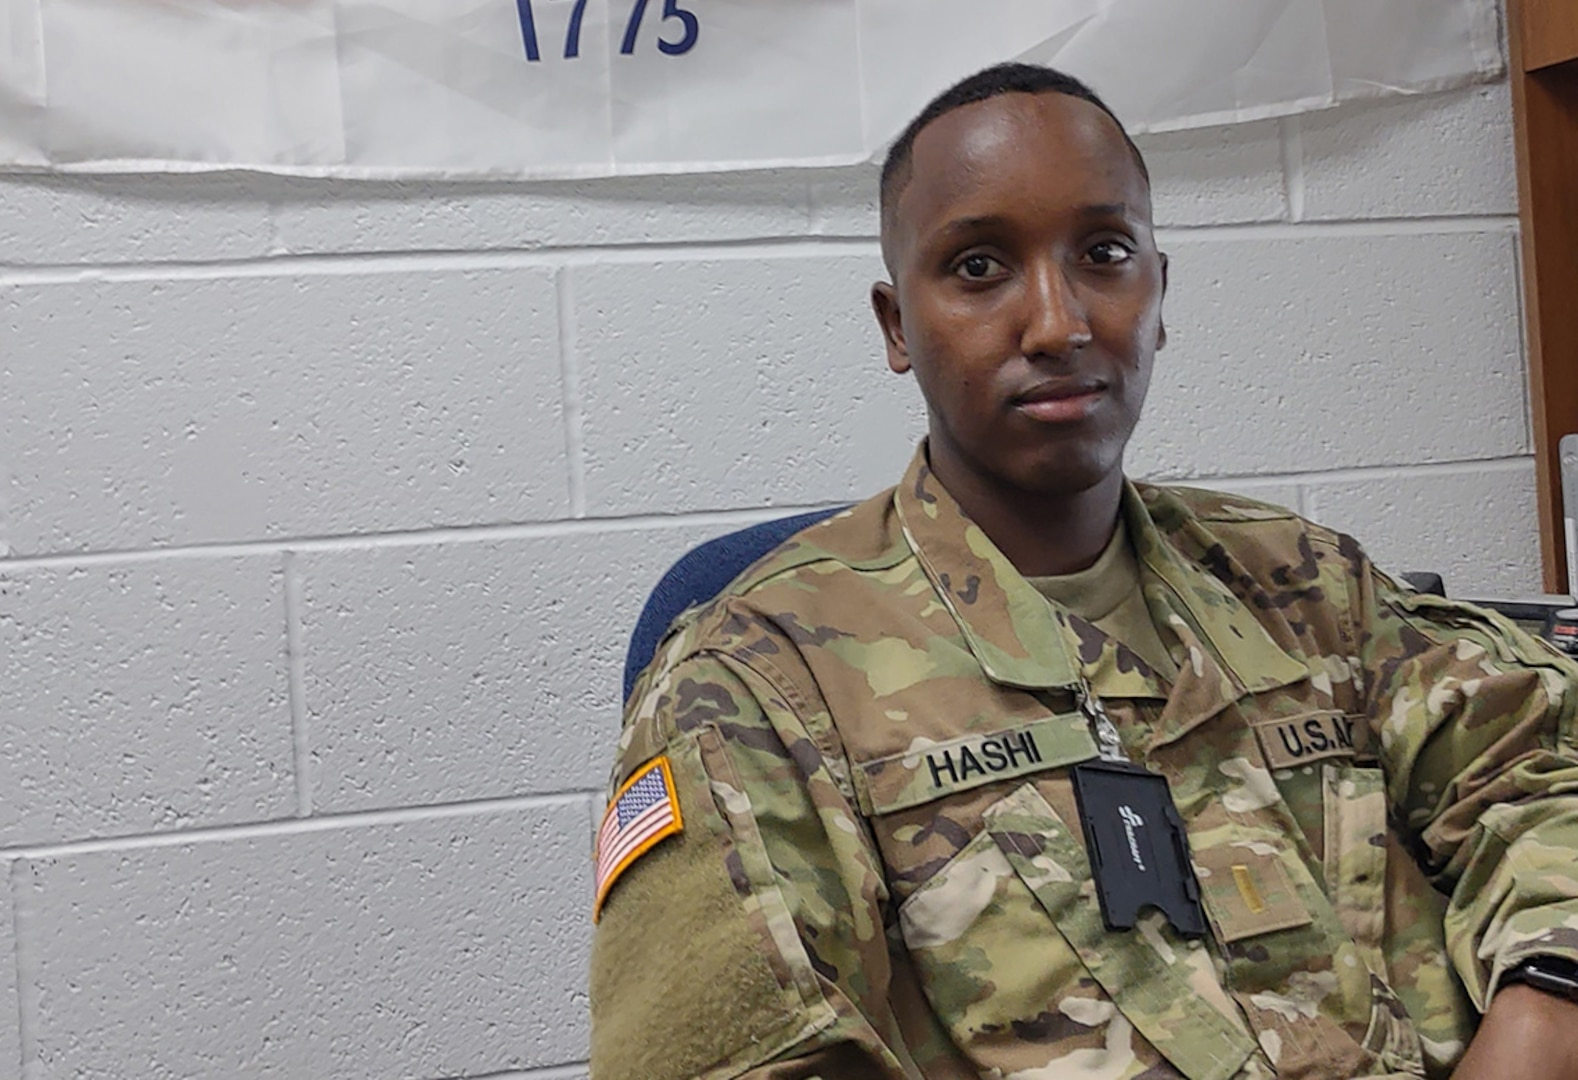 U.S. Army 2nd Lt. Abdimaik Hashi, a newly commissioned transportation officer in the Vermont National Guard, is assigned to assist the Vermont National Guard state resilience coordinator at Camp Johnson, Joint Force Headquarters, Colchester, Vermont. Hashi, shown on Aug. 13, 2021, spent the first eight years of his life in a refugee camp in Kenya.